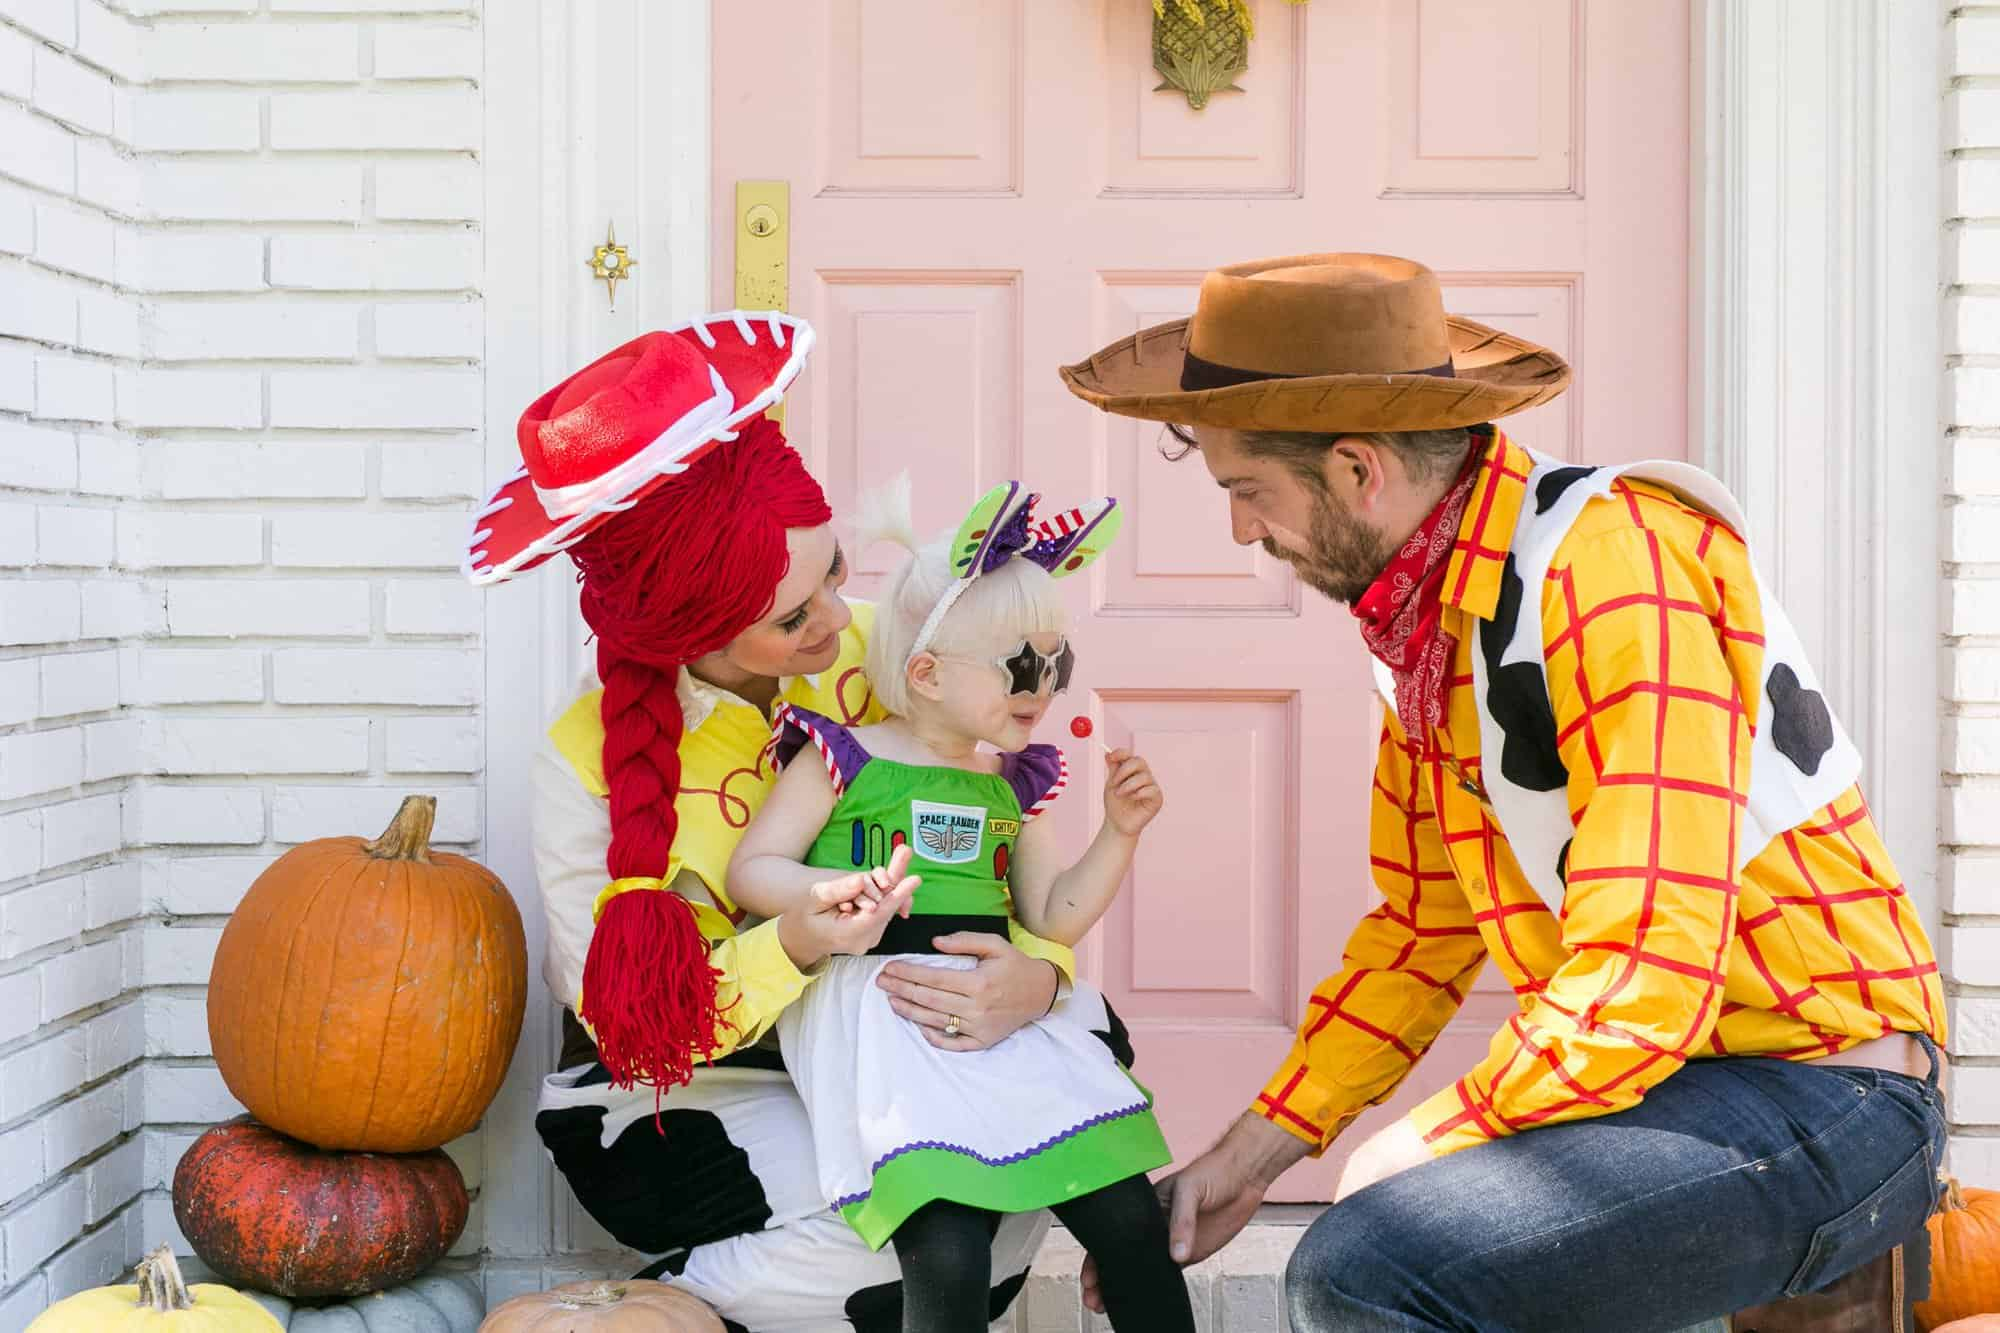 Toy Story 4 Halloween Costumes.Toy Story Family Halloween Costume A Beautiful Mess